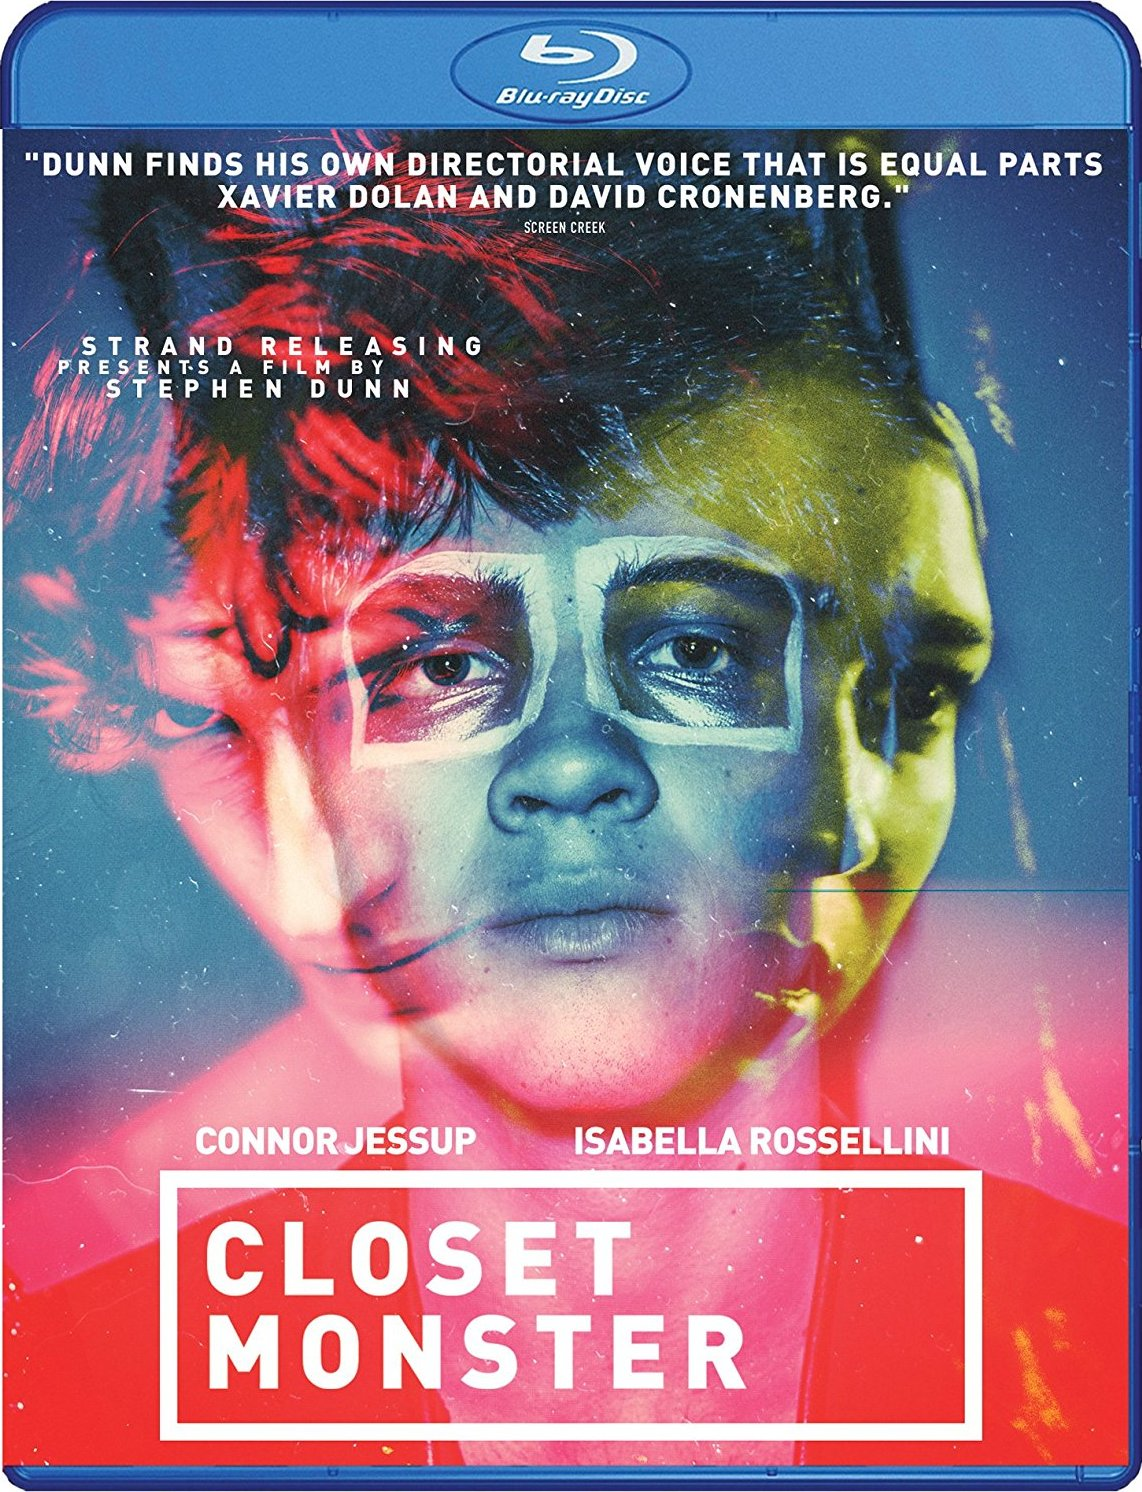 Closet Monster (2015) poster image